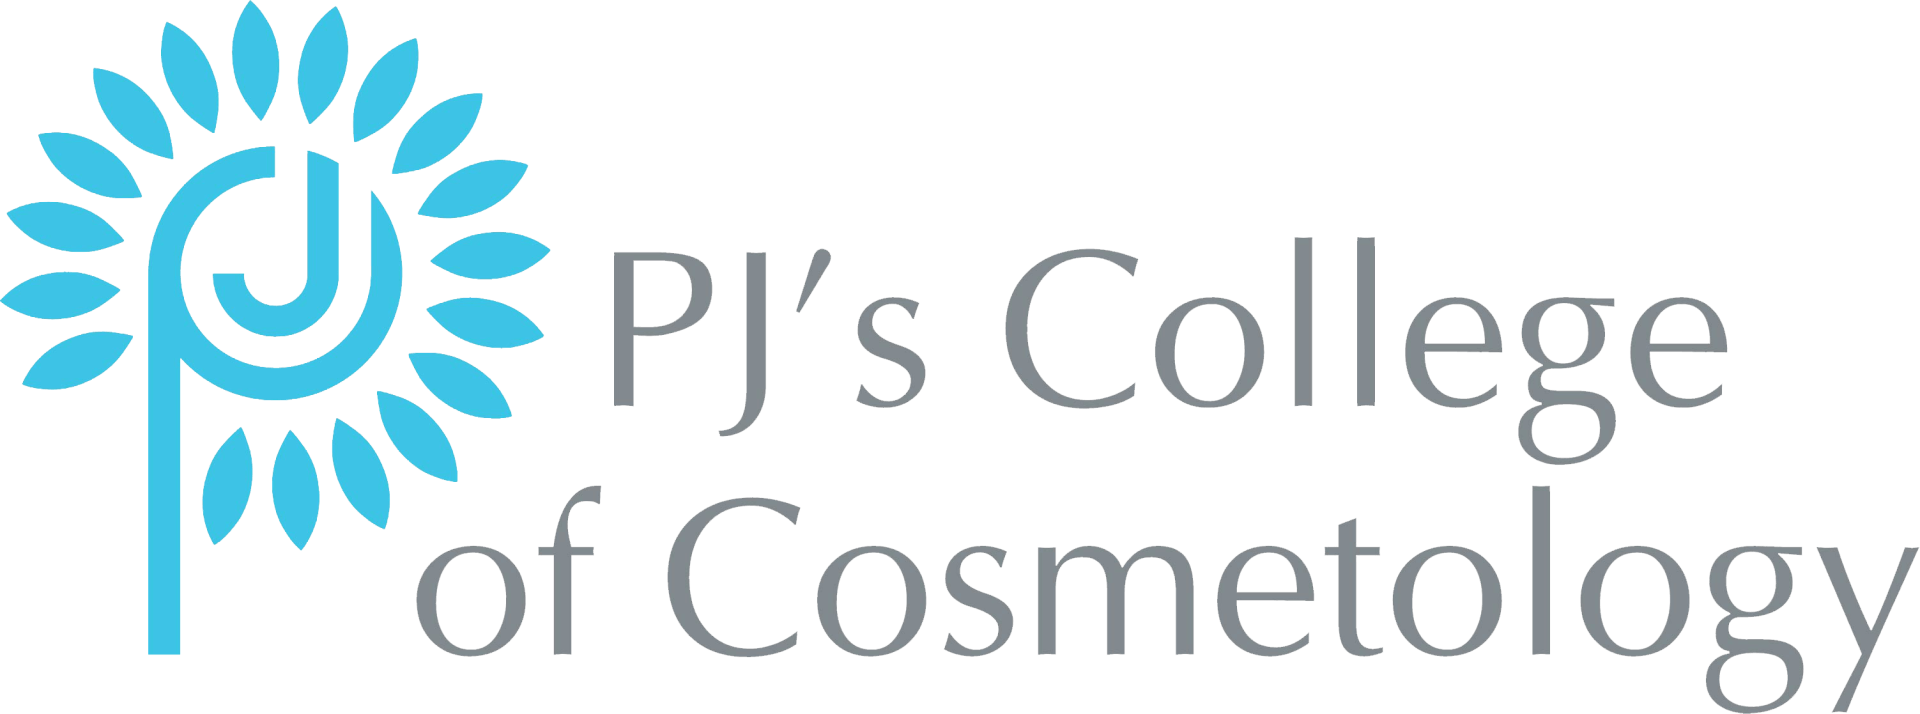 PJ's College of Cosmetology | Carmel, IN